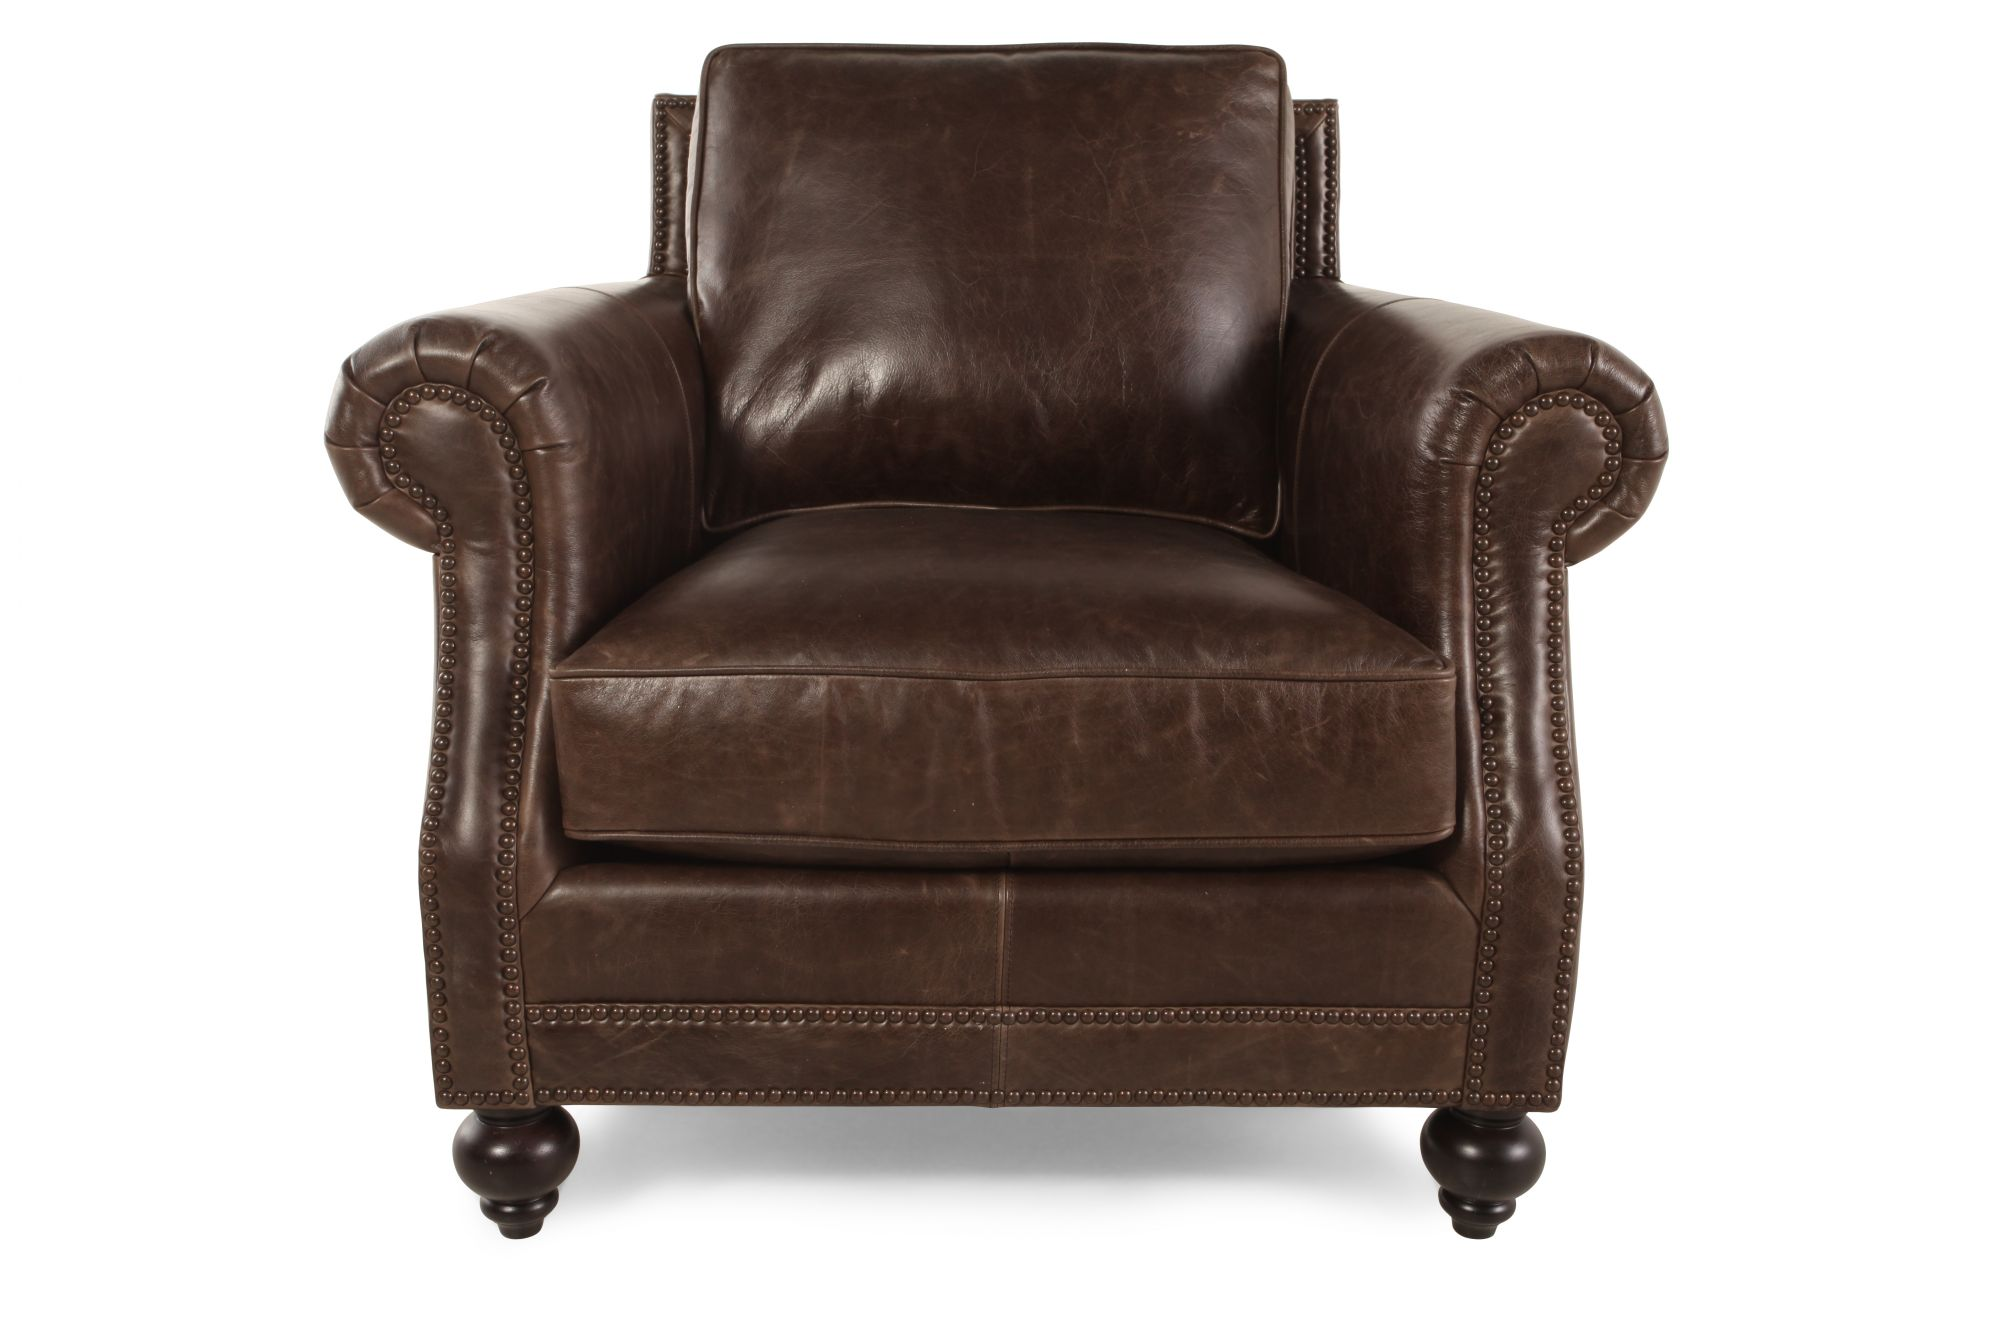 Bernhardt brae leather chair mathis brothers furniture Bernhardt living room furniture